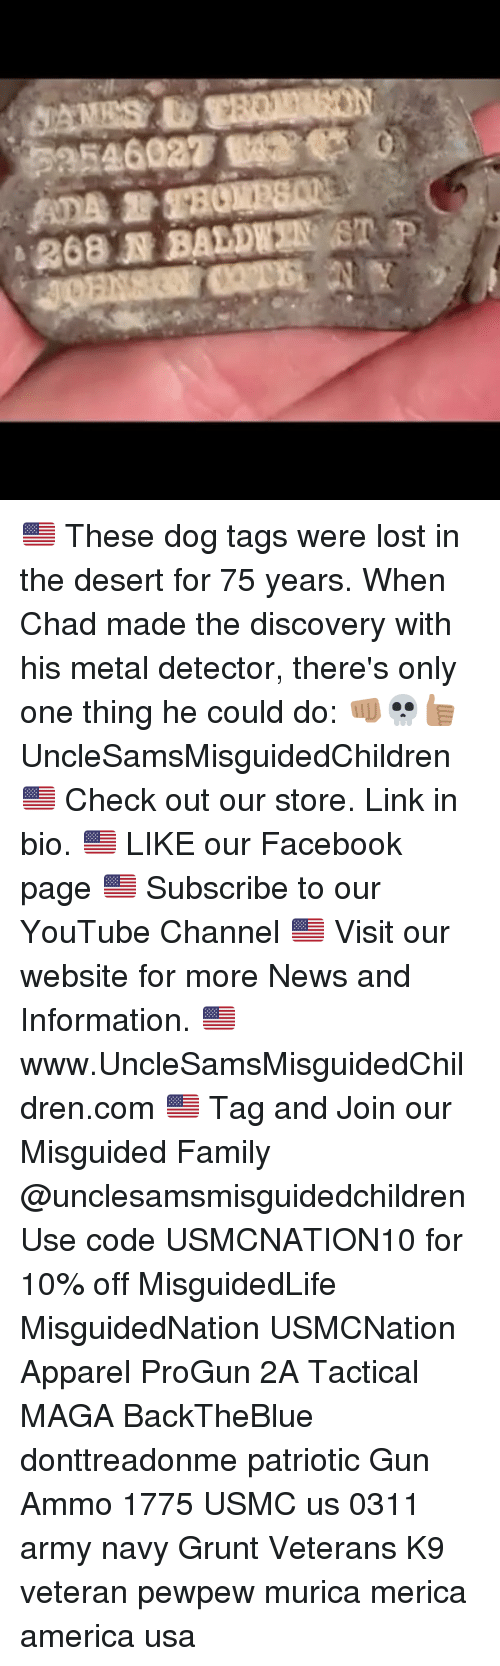 America, Facebook, and Family: -268,JR BALDEZUST P. 🇺🇸 These dog tags were lost in the desert for 75 years. When Chad made the discovery with his metal detector, there's only one thing he could do: 👊🏽💀👍🏽 UncleSamsMisguidedChildren 🇺🇸 Check out our store. Link in bio. 🇺🇸 LIKE our Facebook page 🇺🇸 Subscribe to our YouTube Channel 🇺🇸 Visit our website for more News and Information. 🇺🇸 www.UncleSamsMisguidedChildren.com 🇺🇸 Tag and Join our Misguided Family @unclesamsmisguidedchildren Use code USMCNATION10 for 10% off MisguidedLife MisguidedNation USMCNation Apparel ProGun 2A Tactical MAGA BackTheBlue donttreadonme patriotic Gun Ammo 1775 USMC us 0311 army navy Grunt Veterans K9 veteran pewpew murica merica america usa